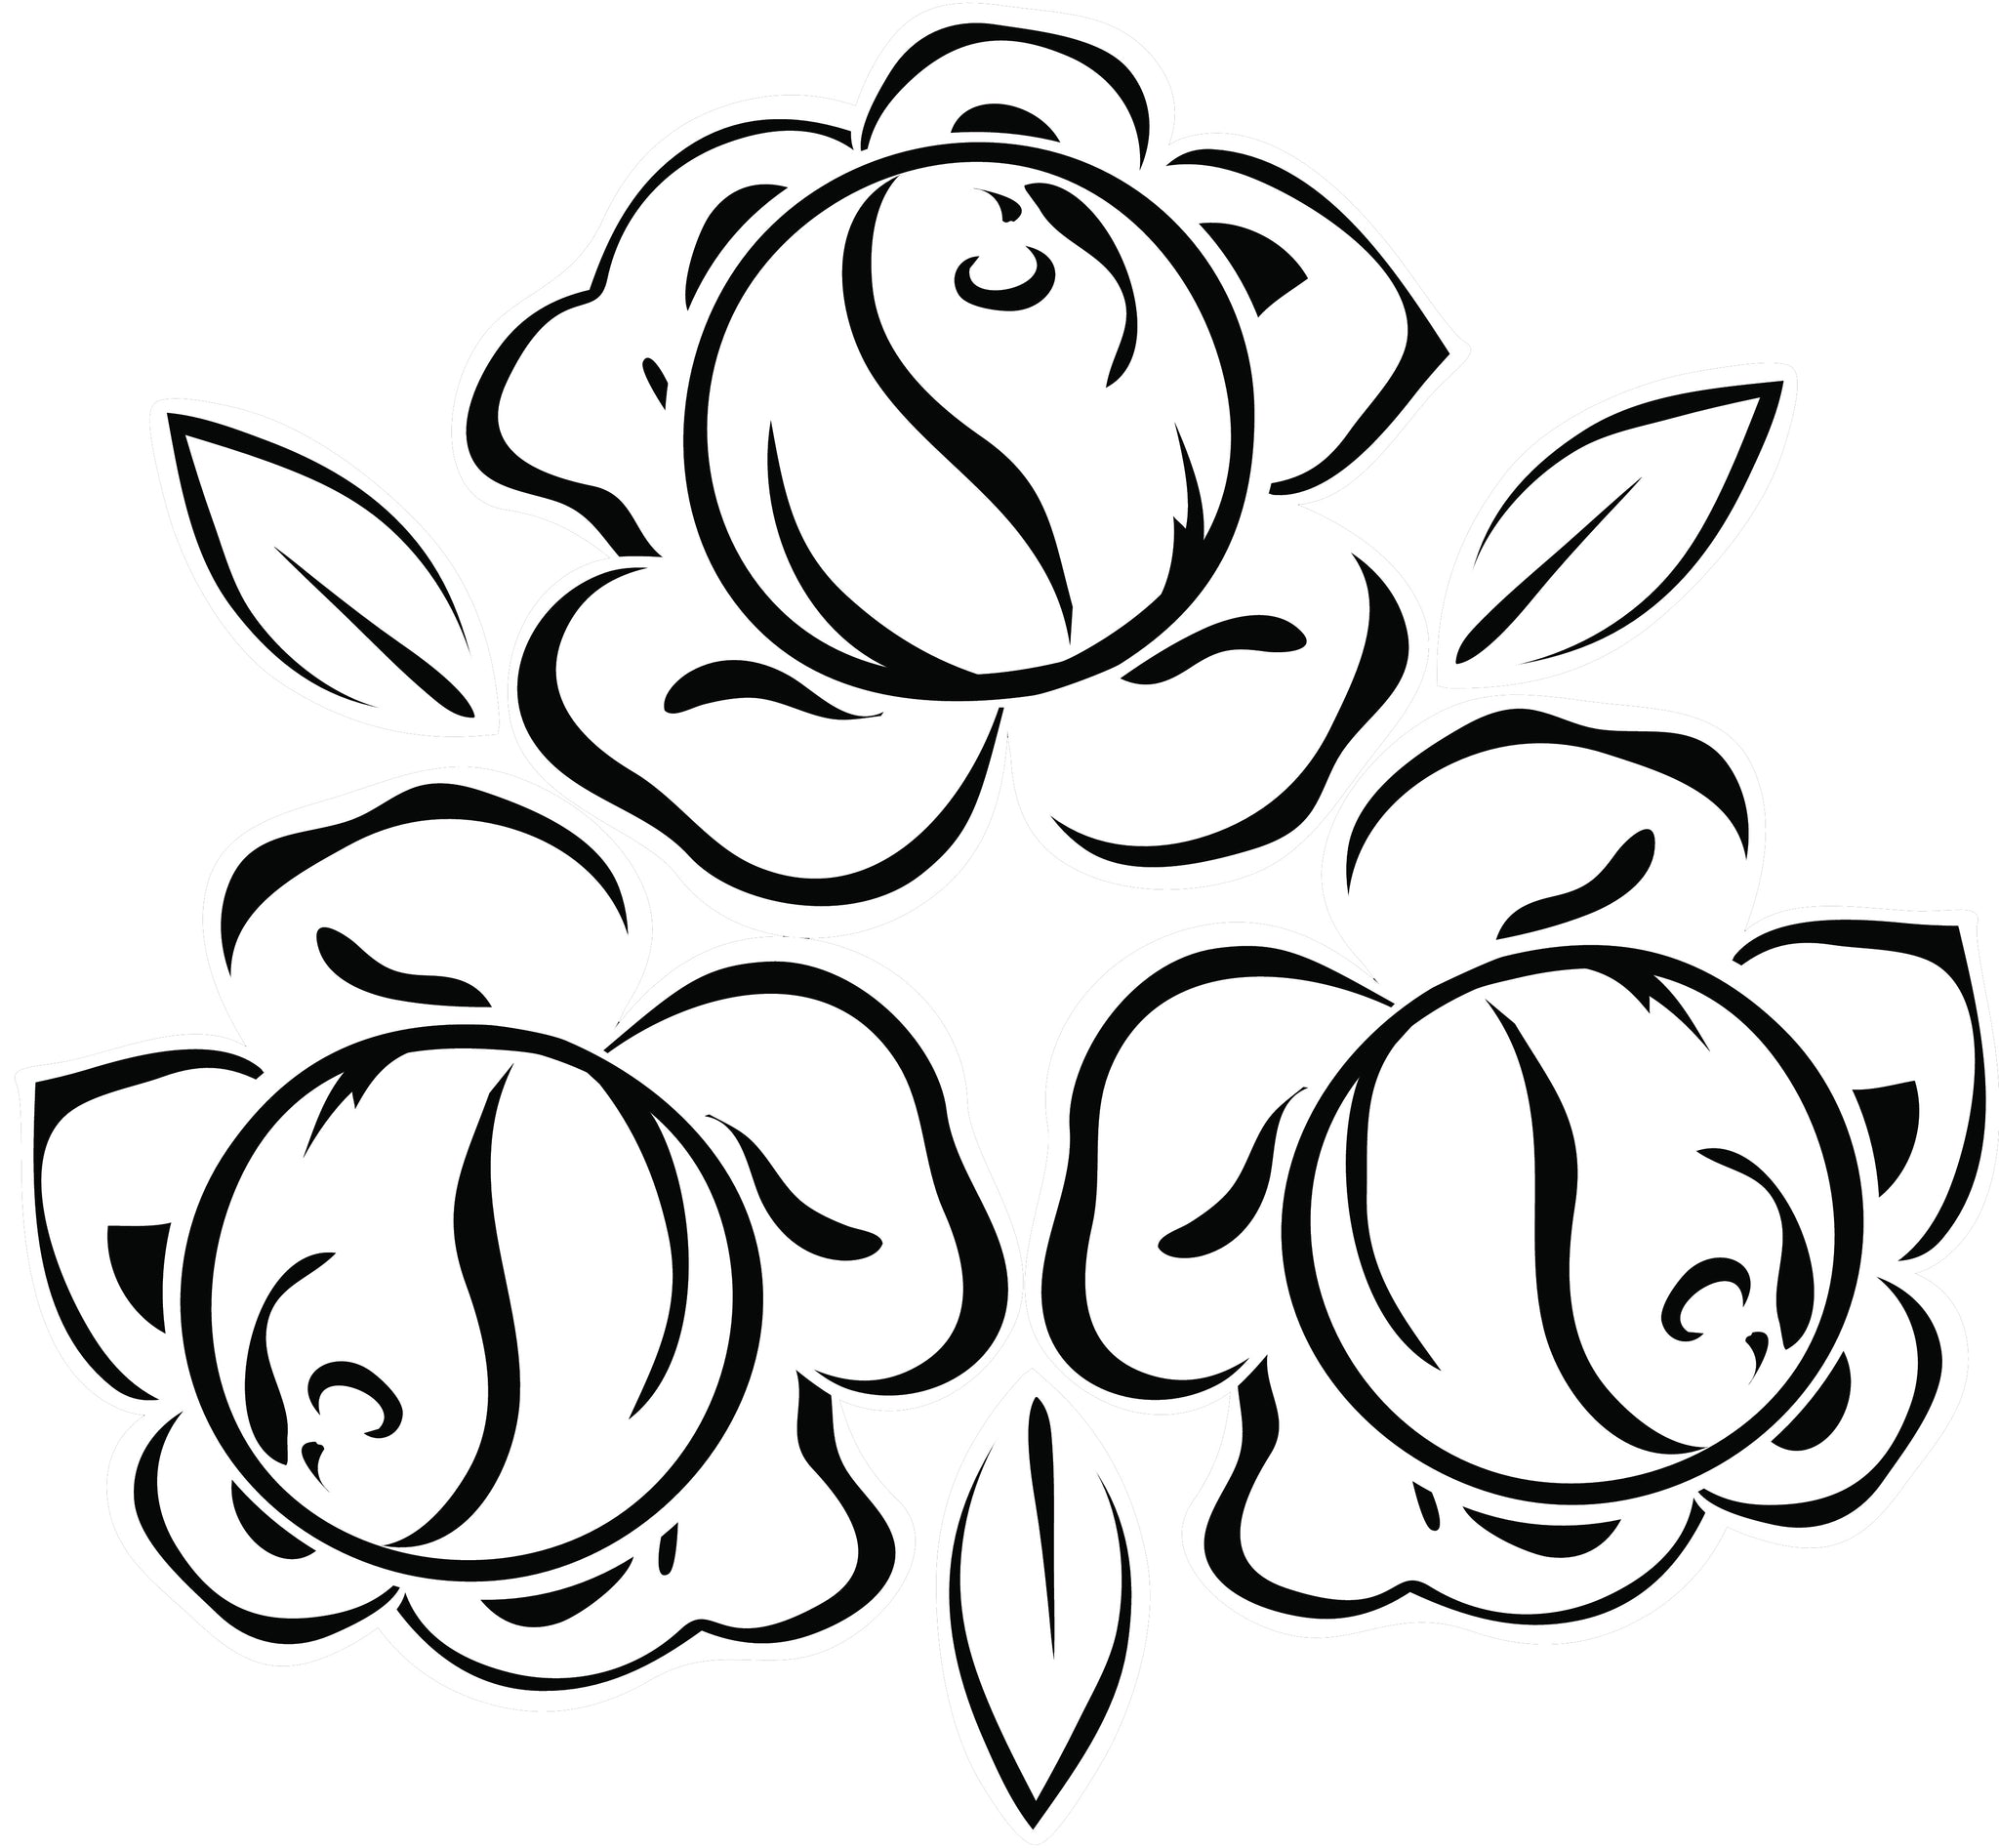 Pretty Black and White Rose Outlines Vinyl Decal Sticker